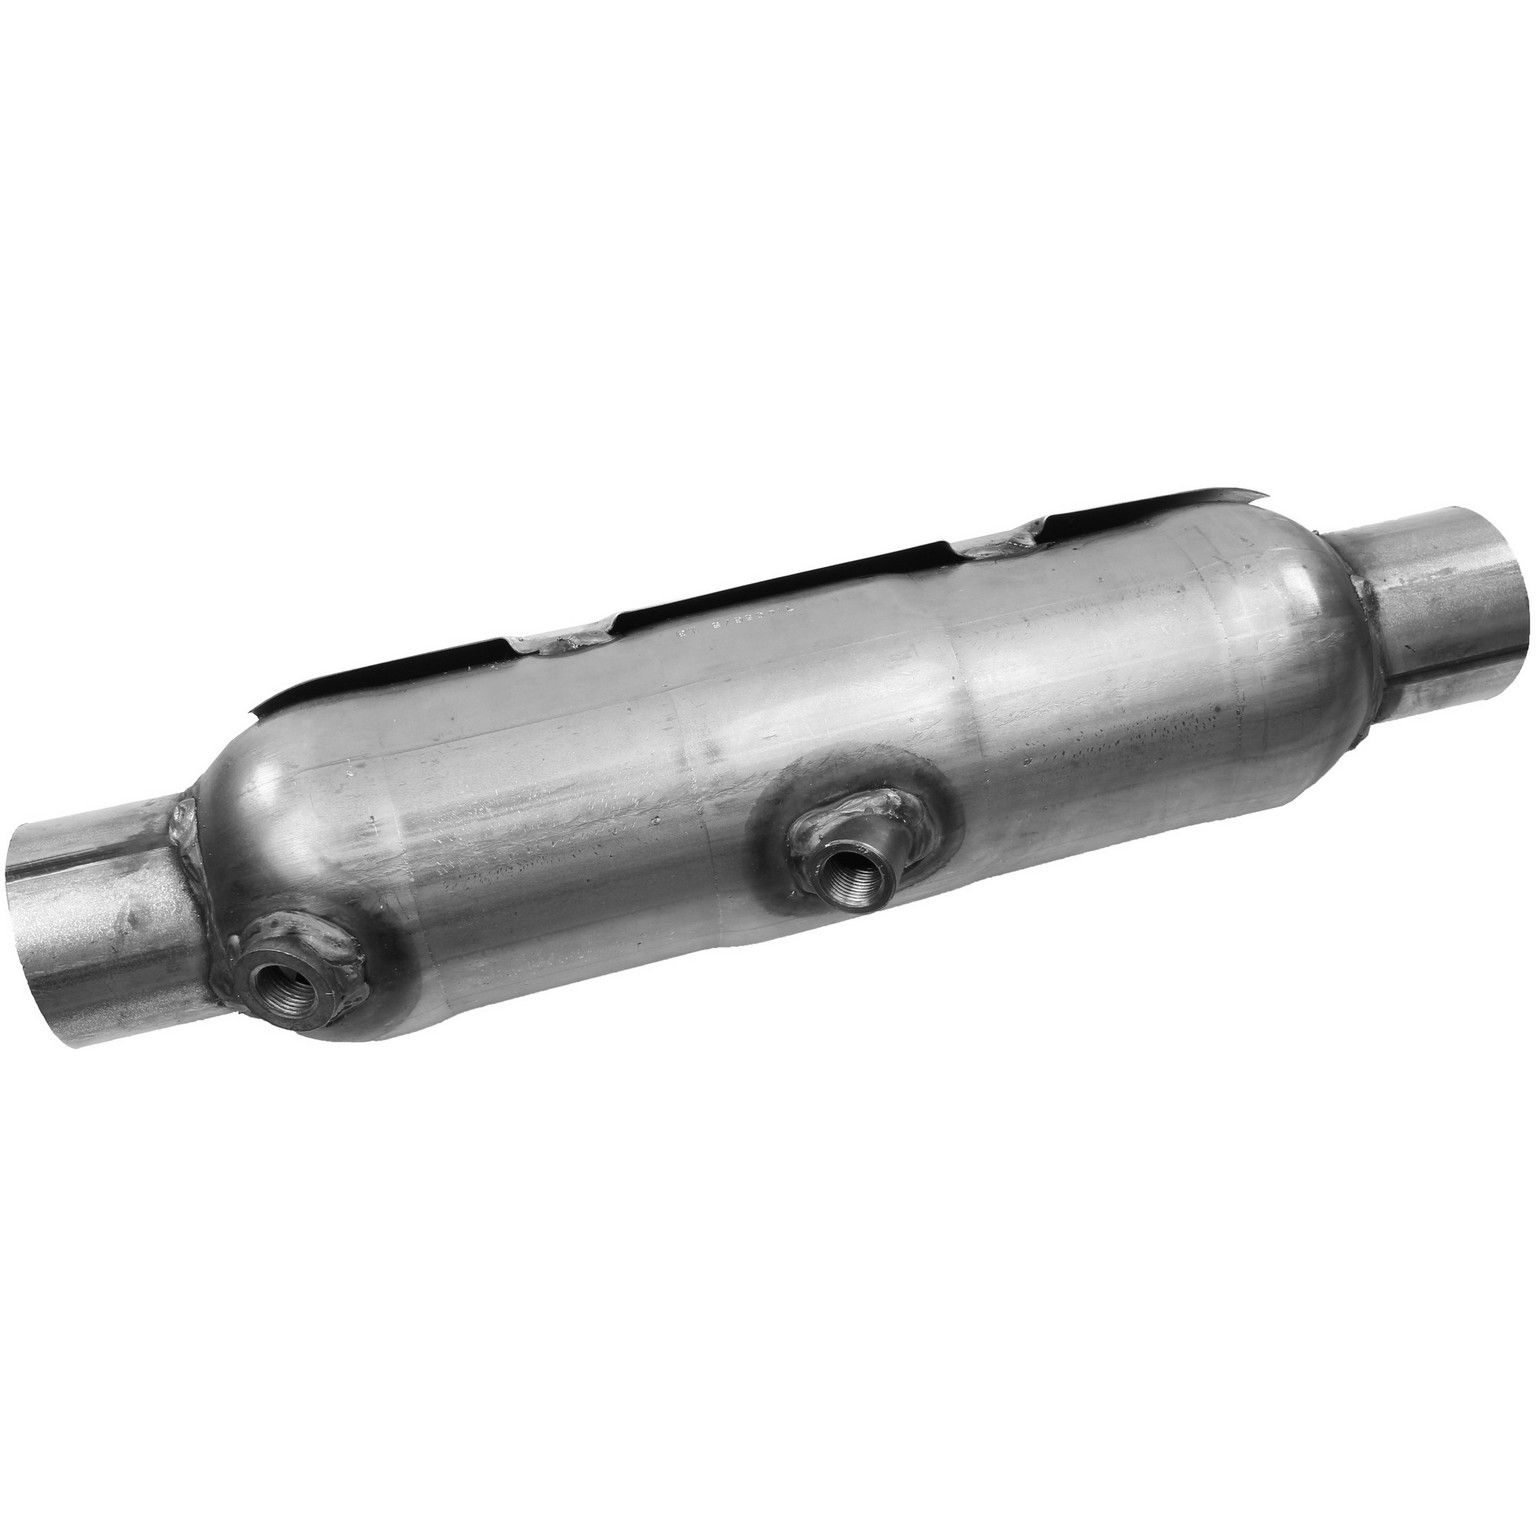 Acura RSX Catalytic Converter Replacement Bosal DEC Eastern - Acura rsx catalytic converter